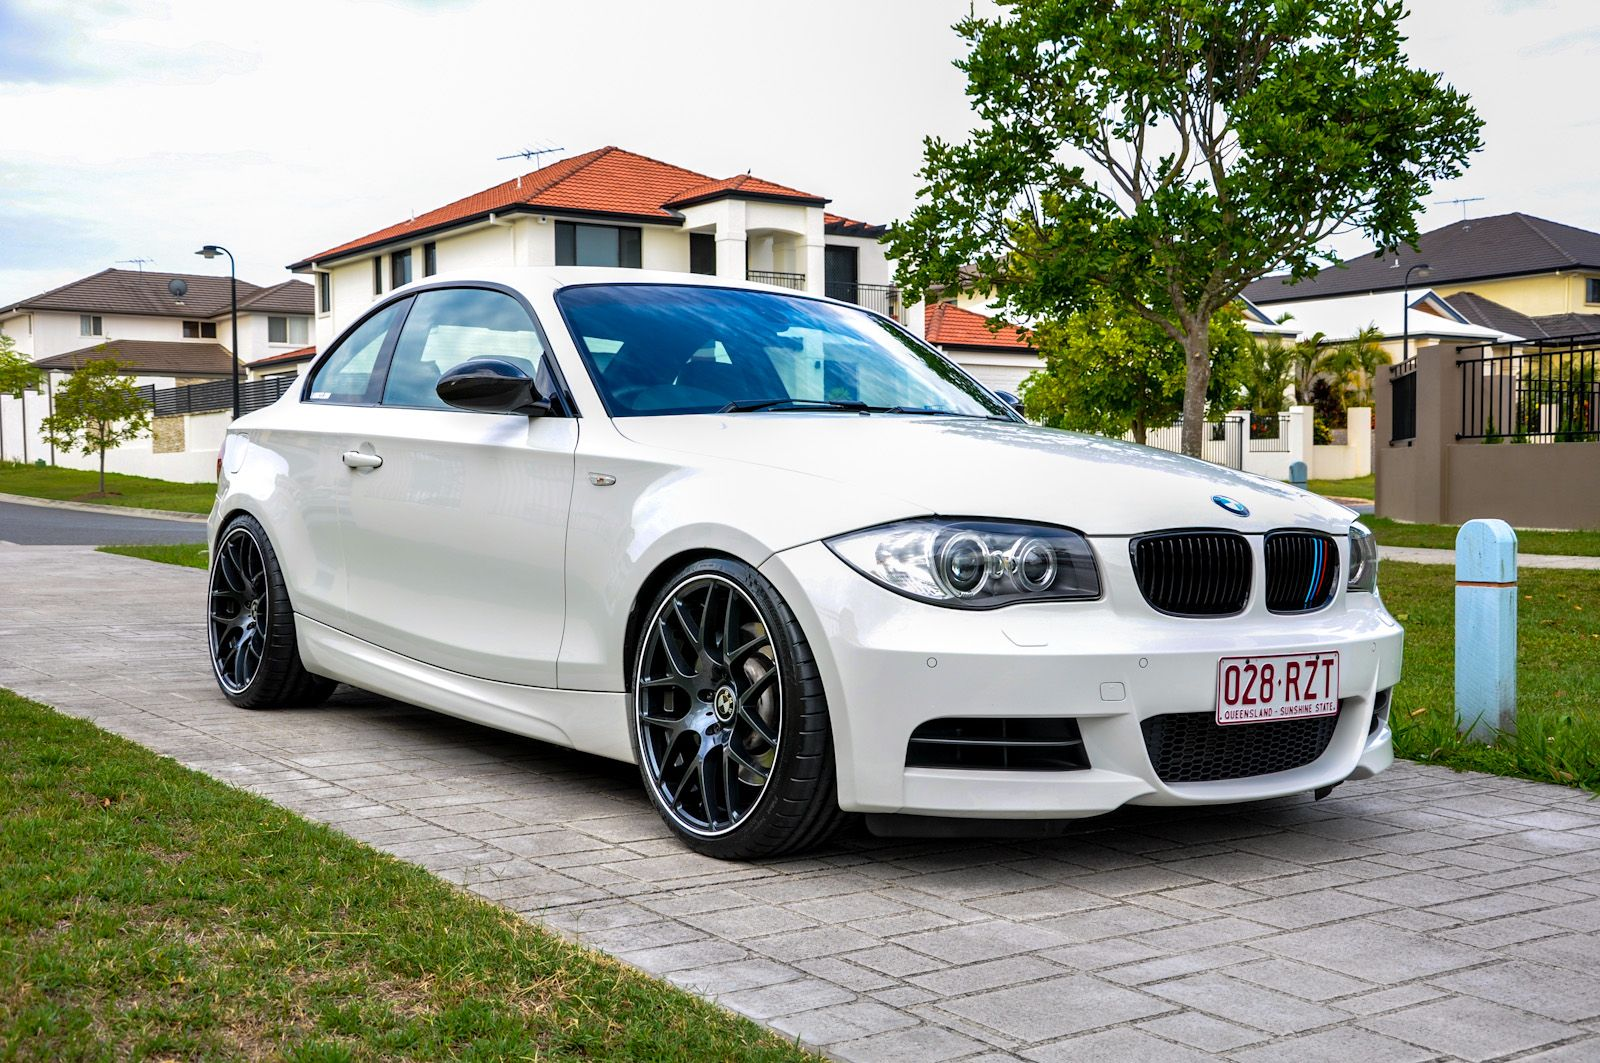 vmr v710 bmw e82 1 series vmr wheels pinterest bmw wheels and cars. Black Bedroom Furniture Sets. Home Design Ideas